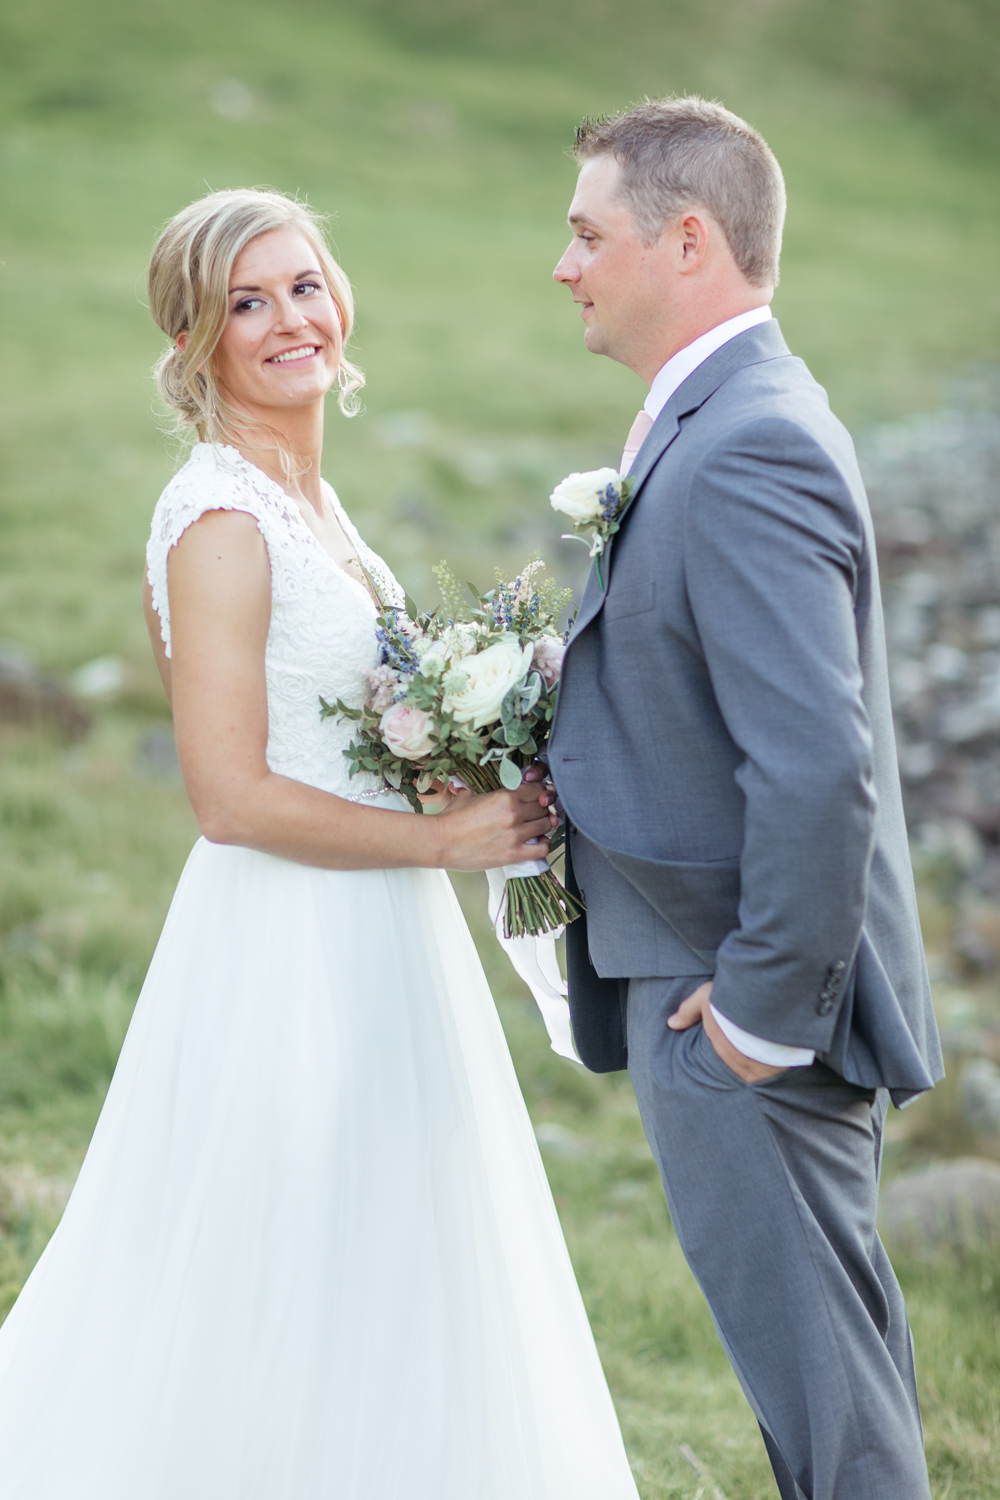 Bride and Groom posing for their bridal wedding photographs after their elopement ceremony in kinbane castle